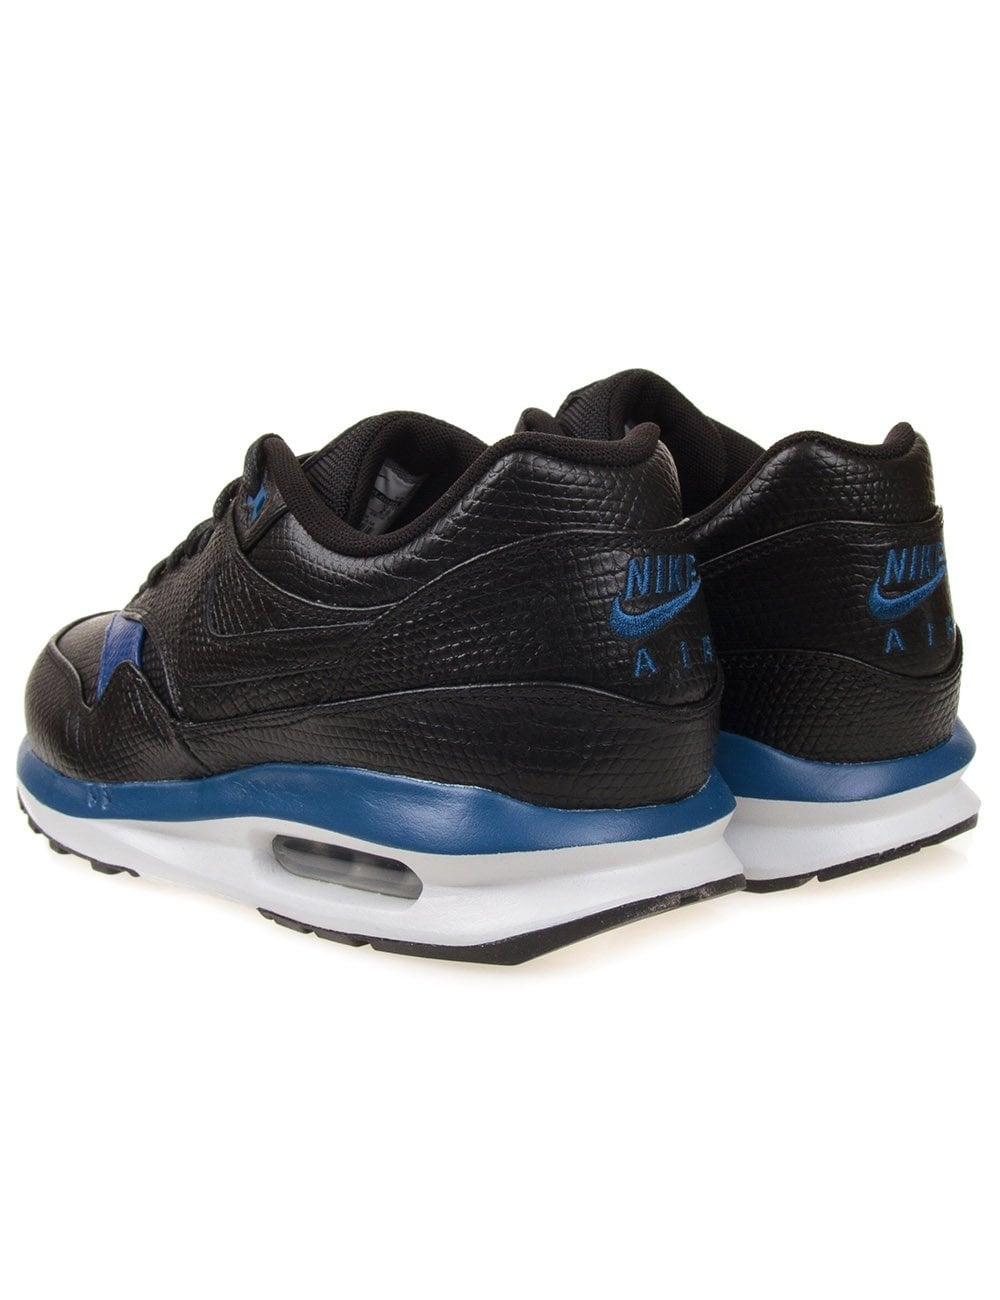 nike air max 1 lunar deluxe black nike from fat buddha. Black Bedroom Furniture Sets. Home Design Ideas